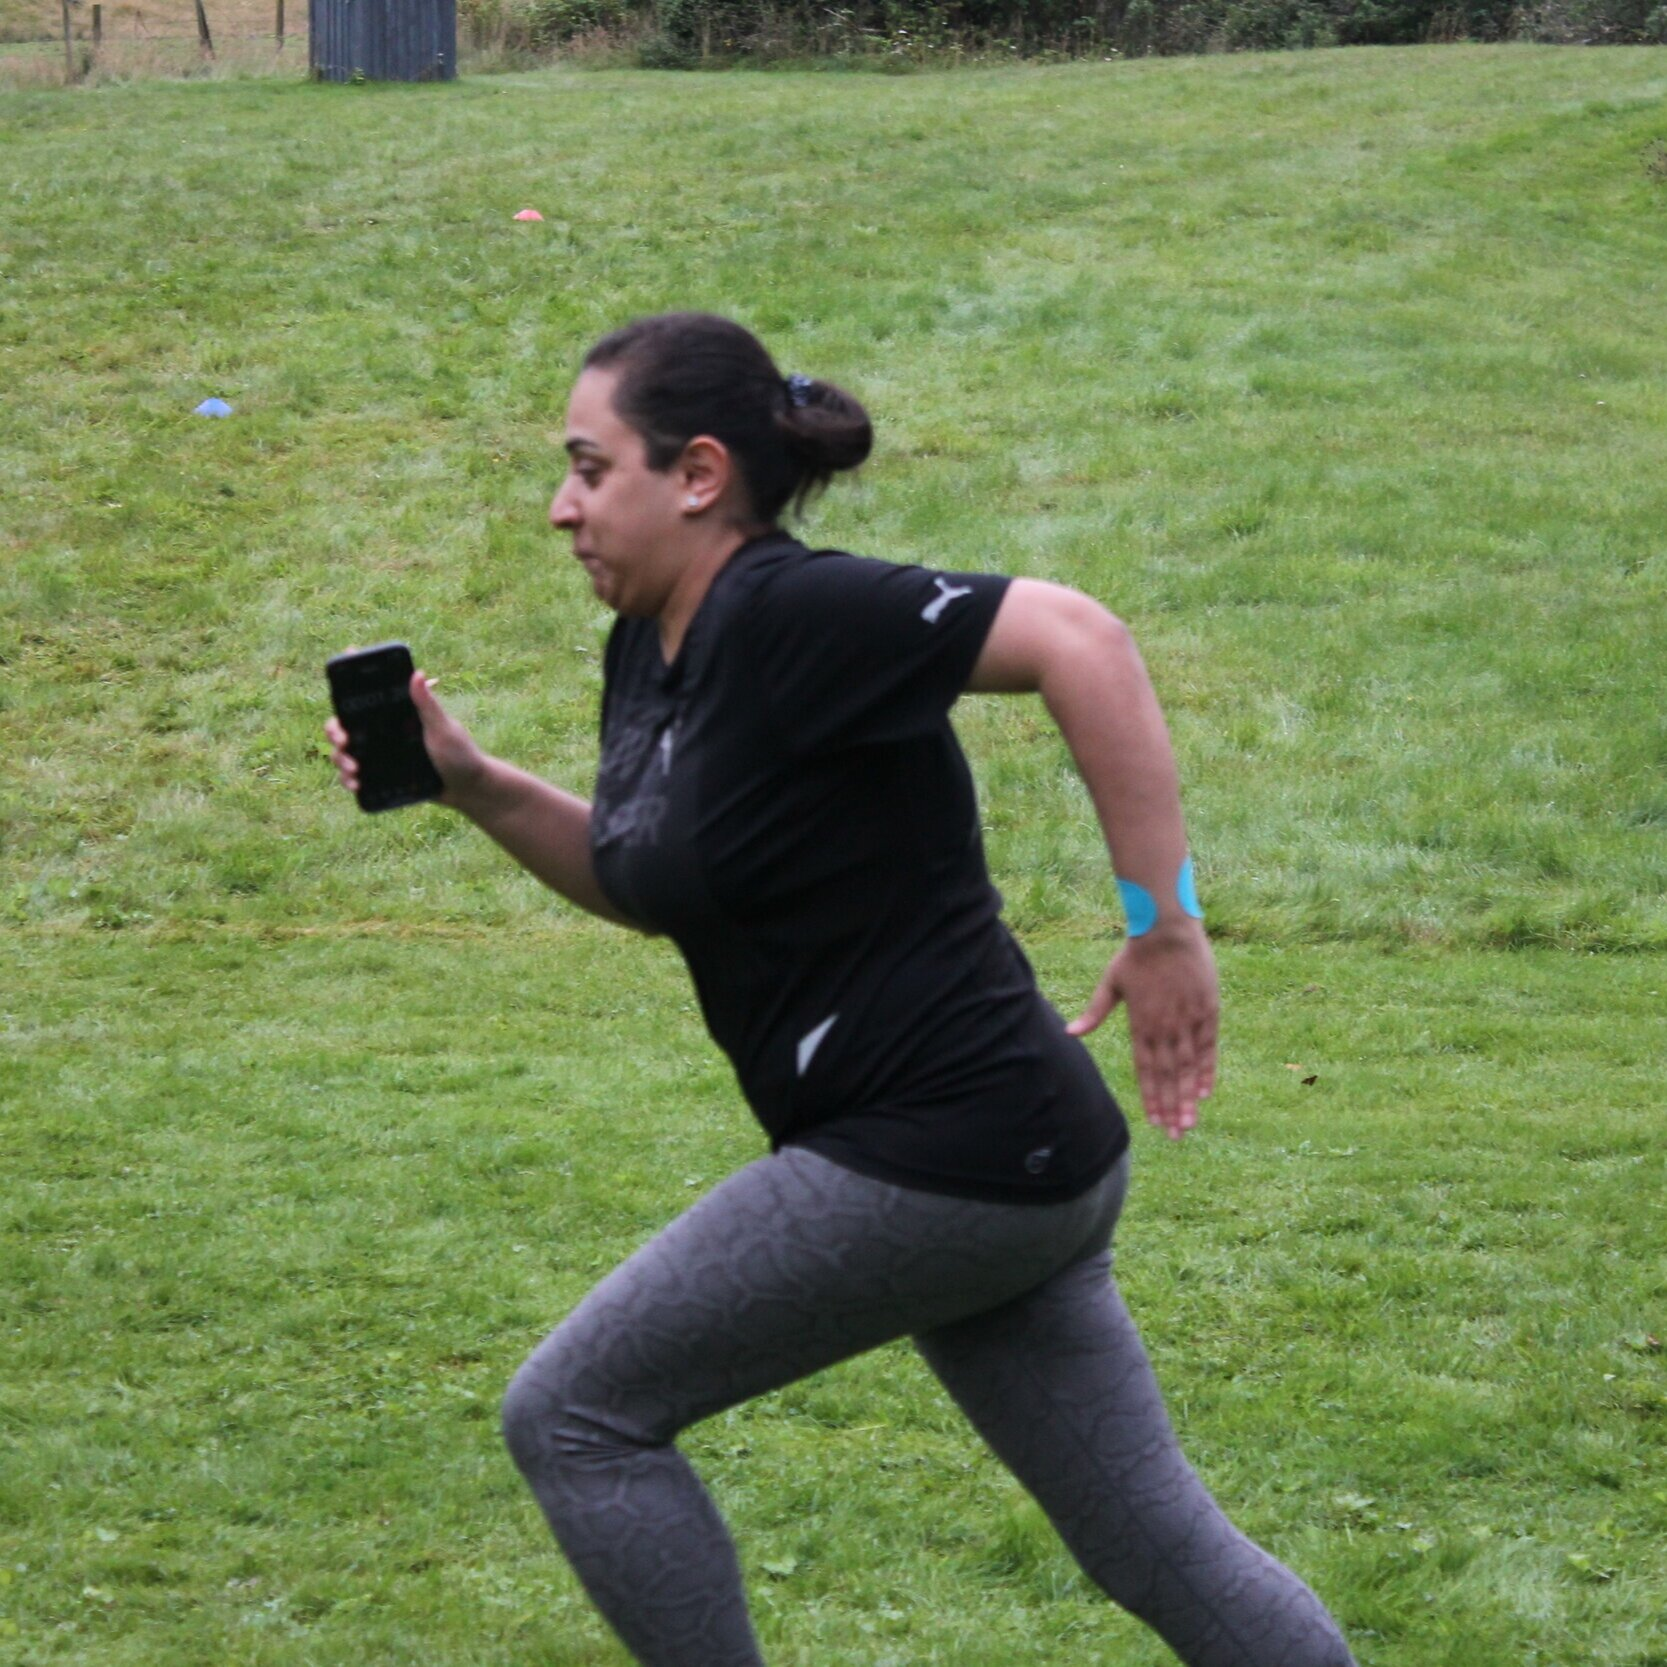 Uzma - Uzma found her competitive streak at boot camp - she threw herself into the sprints with glee! Her efforts paid off as she lost 3.6kg (8lbs) on the week boot camp in Scotland!